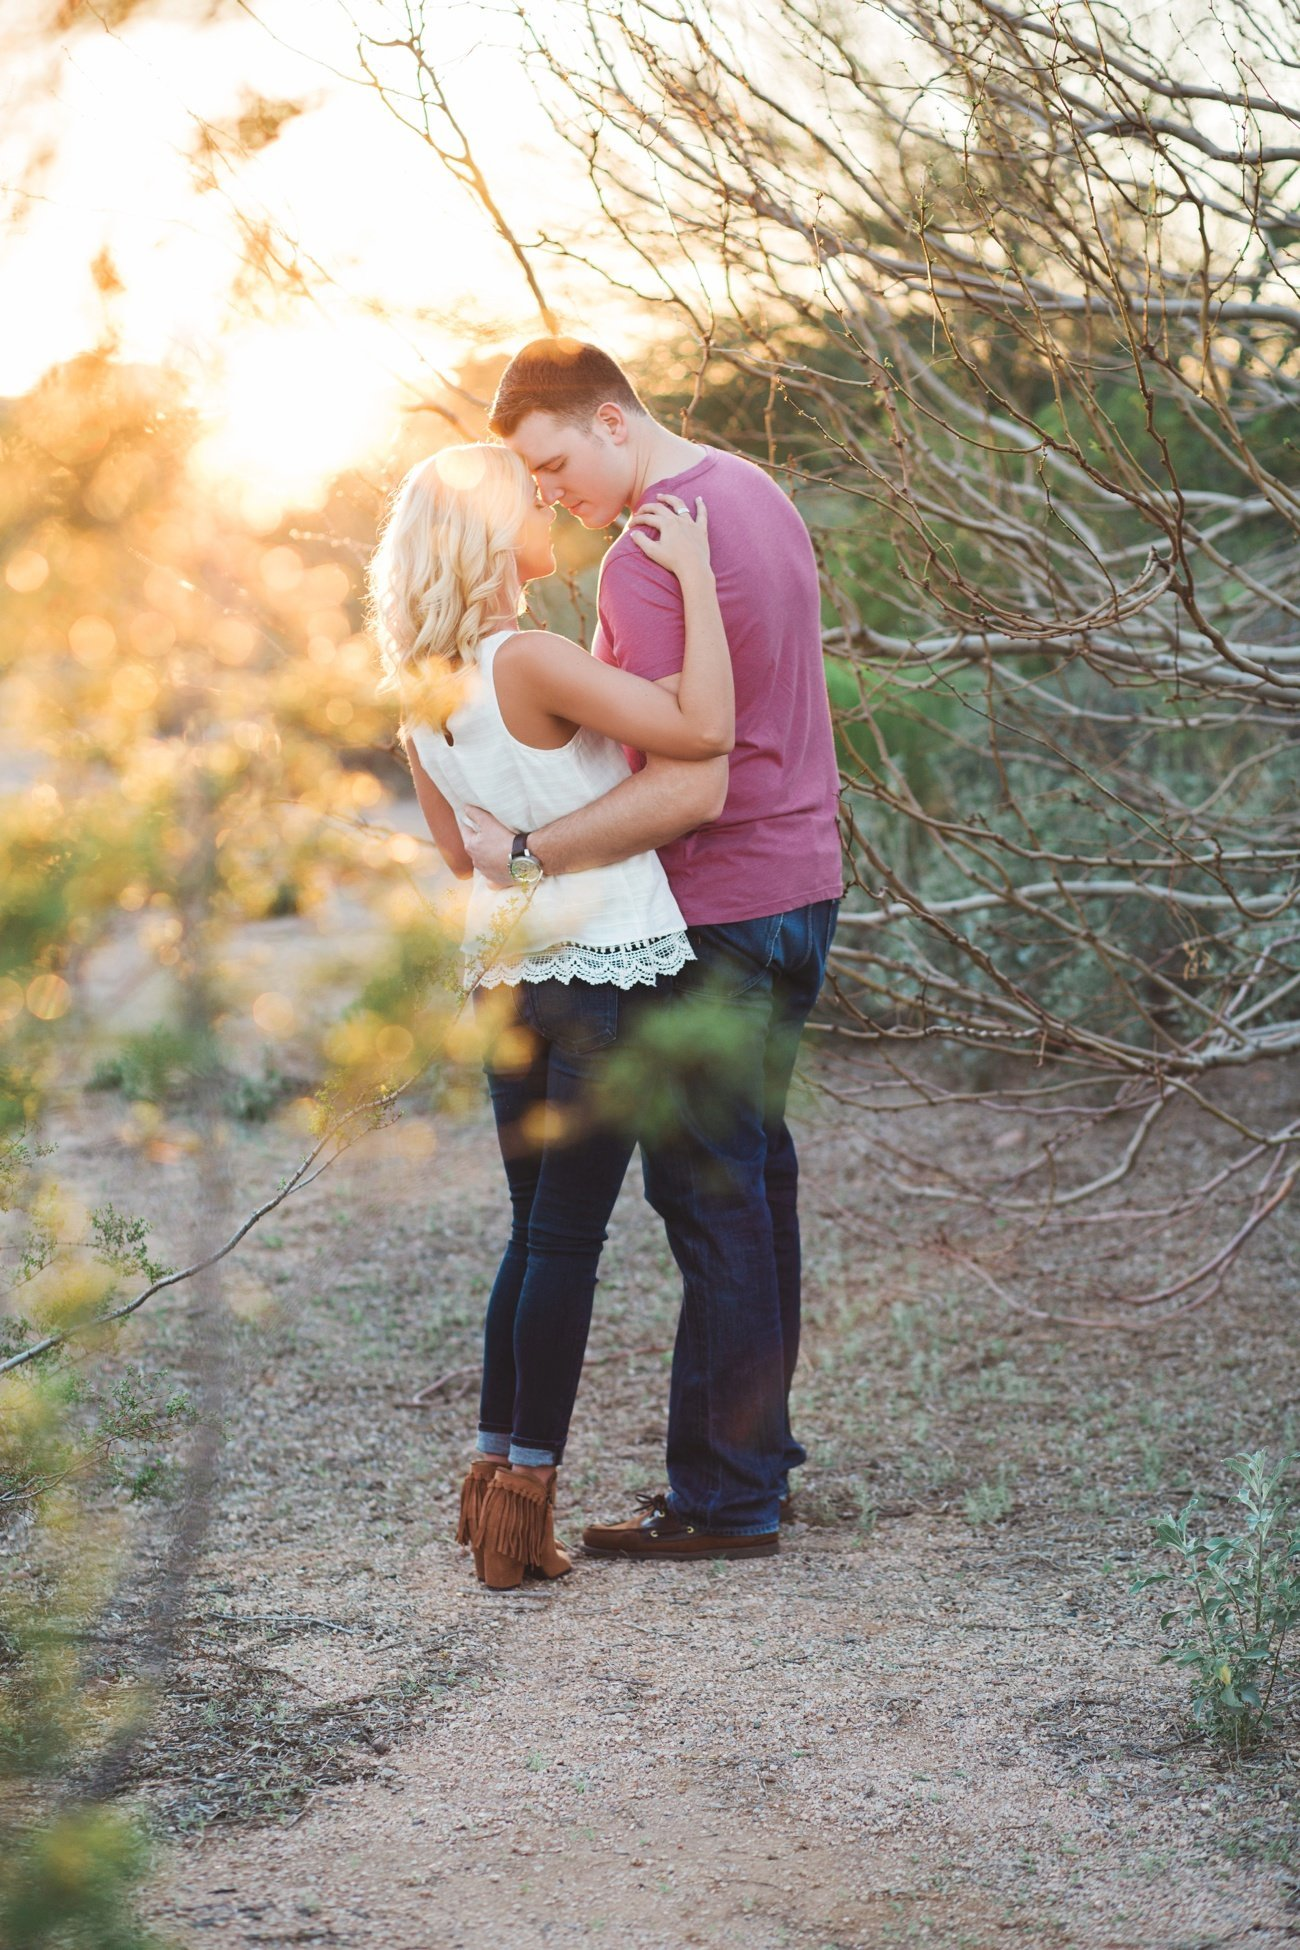 Engagements Colorado Springs Engagement Photographer Wedding Photos Pictures Portraits Arizona CO Denver Manitou Springs Scottsdale AZ 2016-06-27_0095